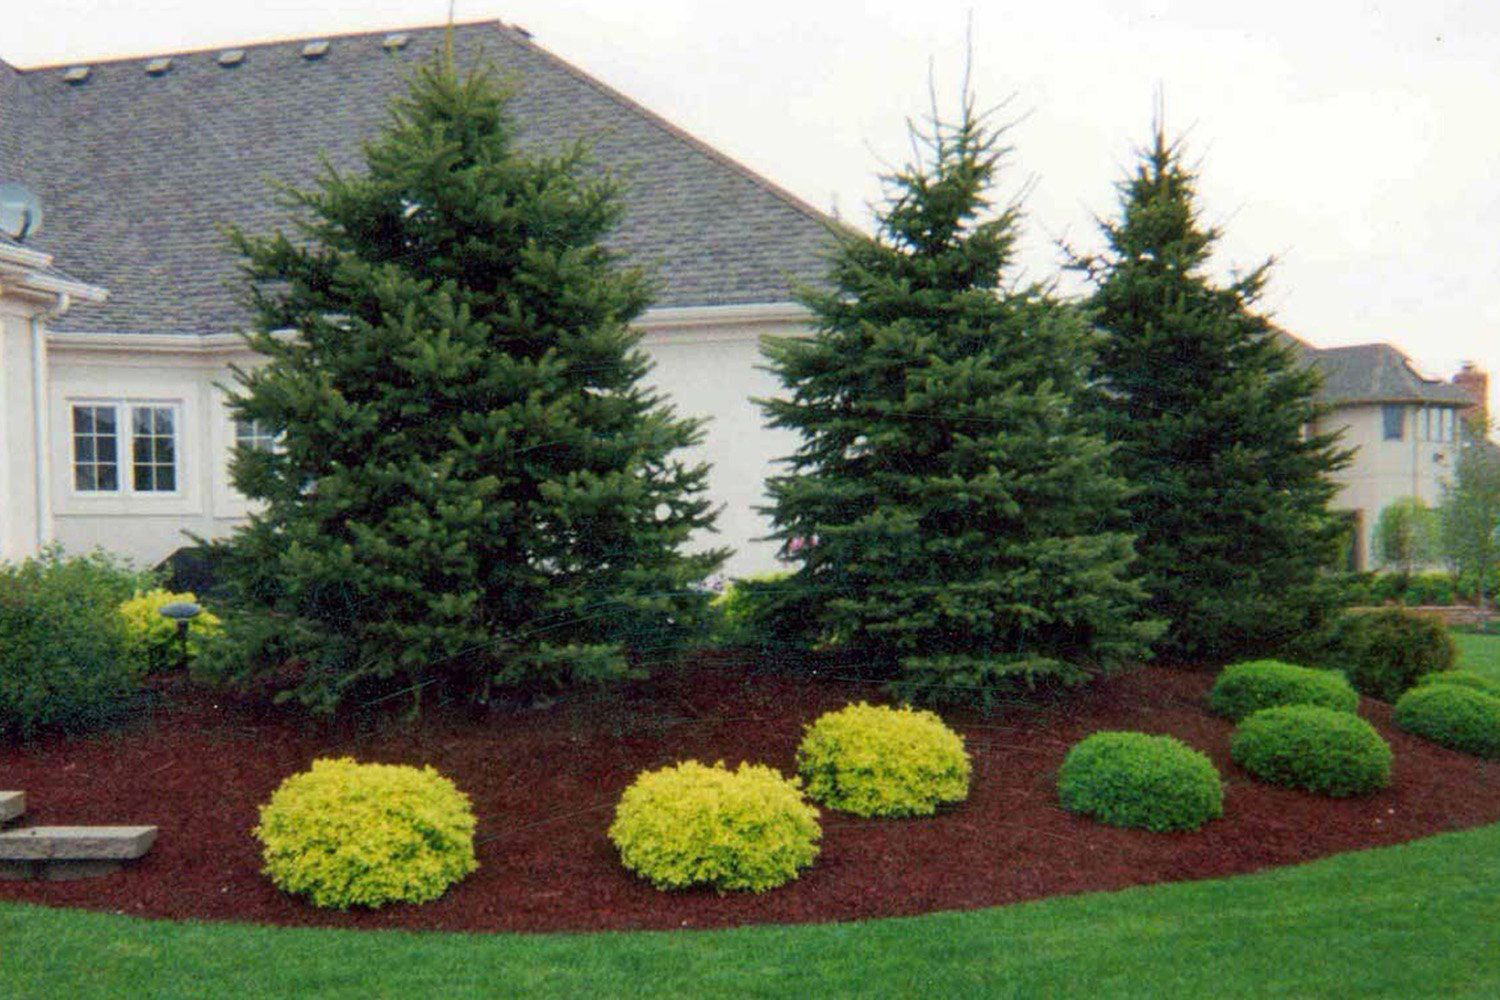 Landscaping With Evergreen Shrubs : Landscaping with evergreens small evergreen trees for